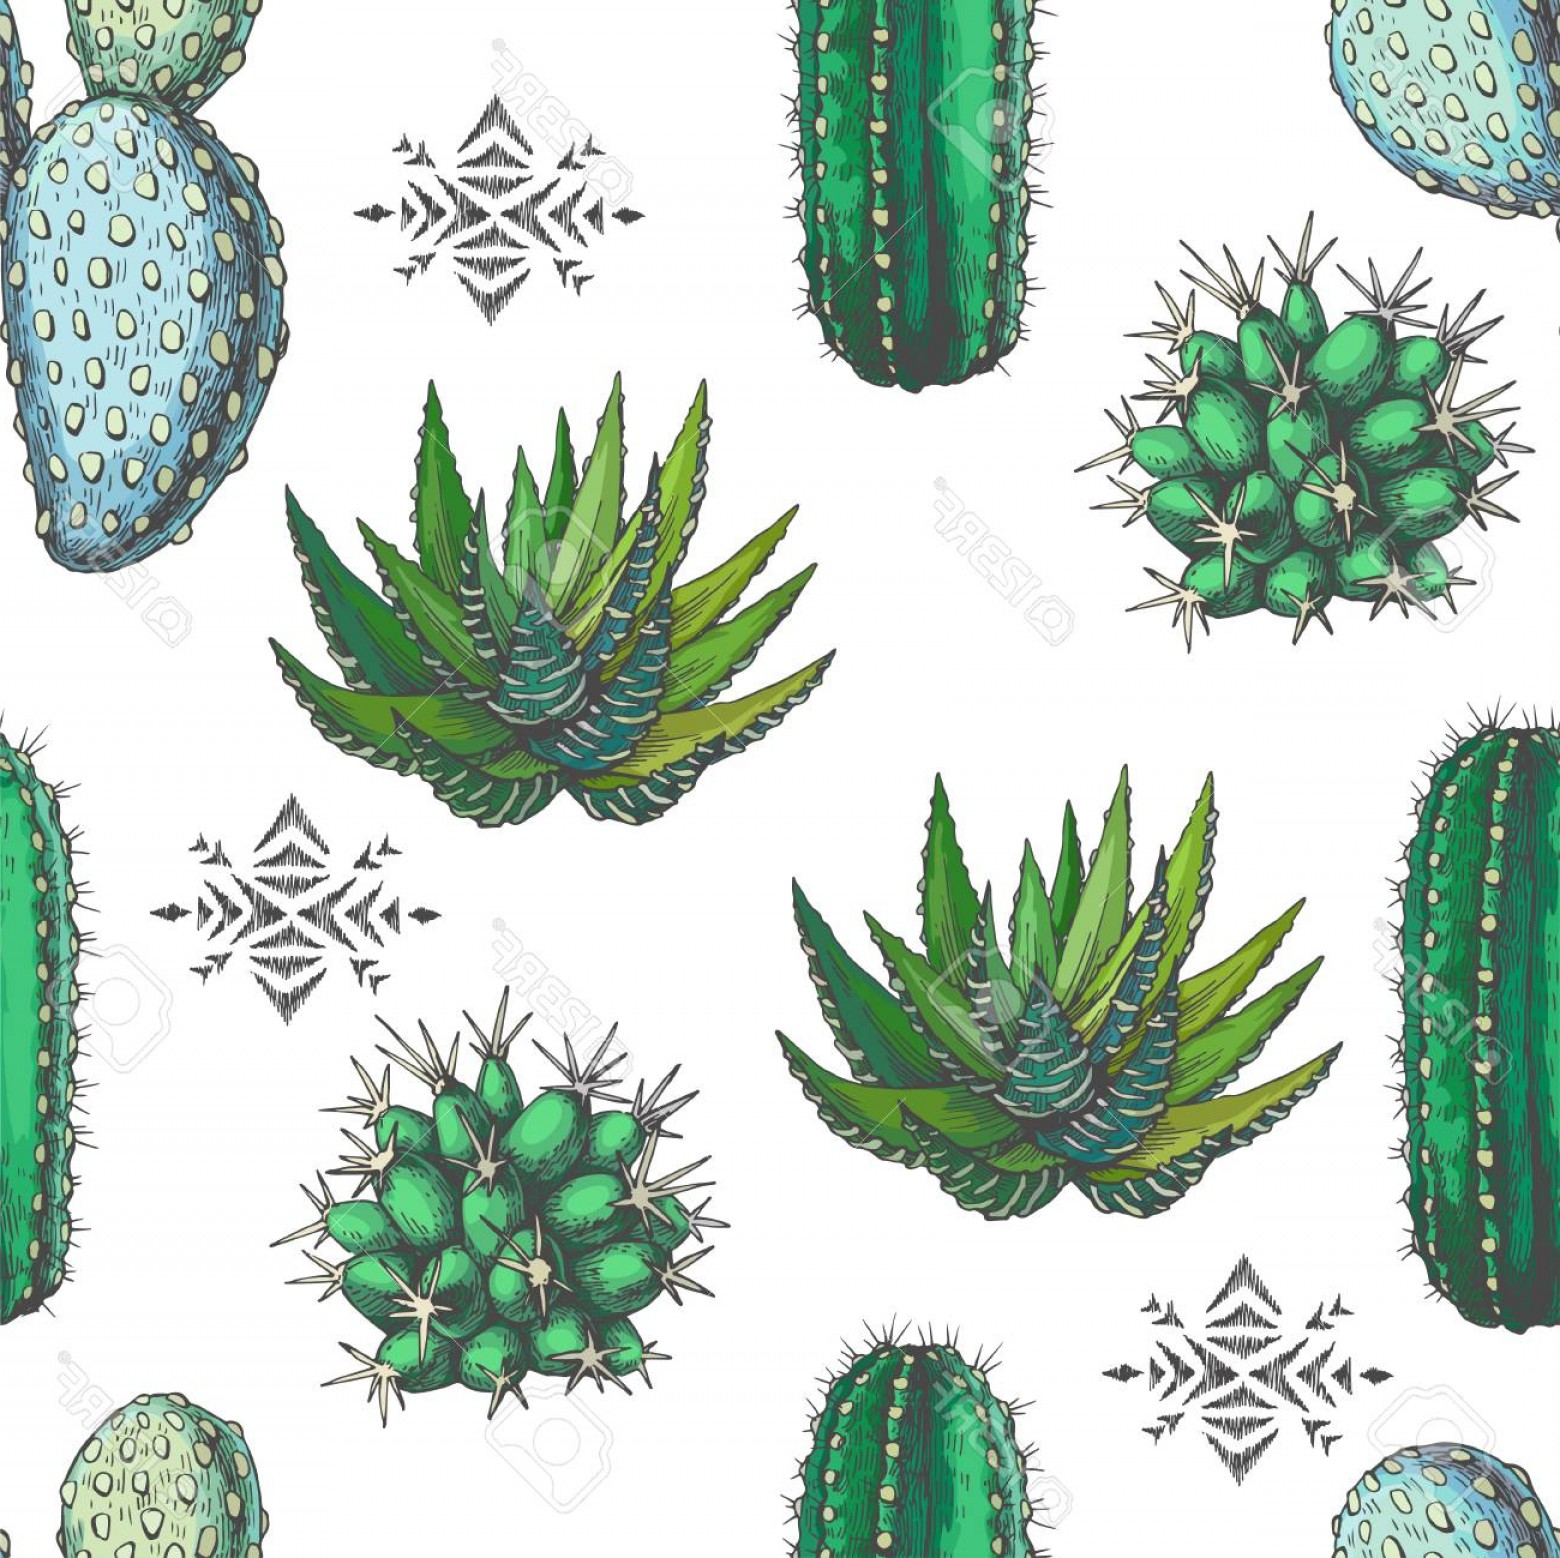 Aztec Cactus Vector: Photostock Vector Vector Seamless Pattern With Color Houseplants And Aztec Ornament Vintage Illustration With Cactus A